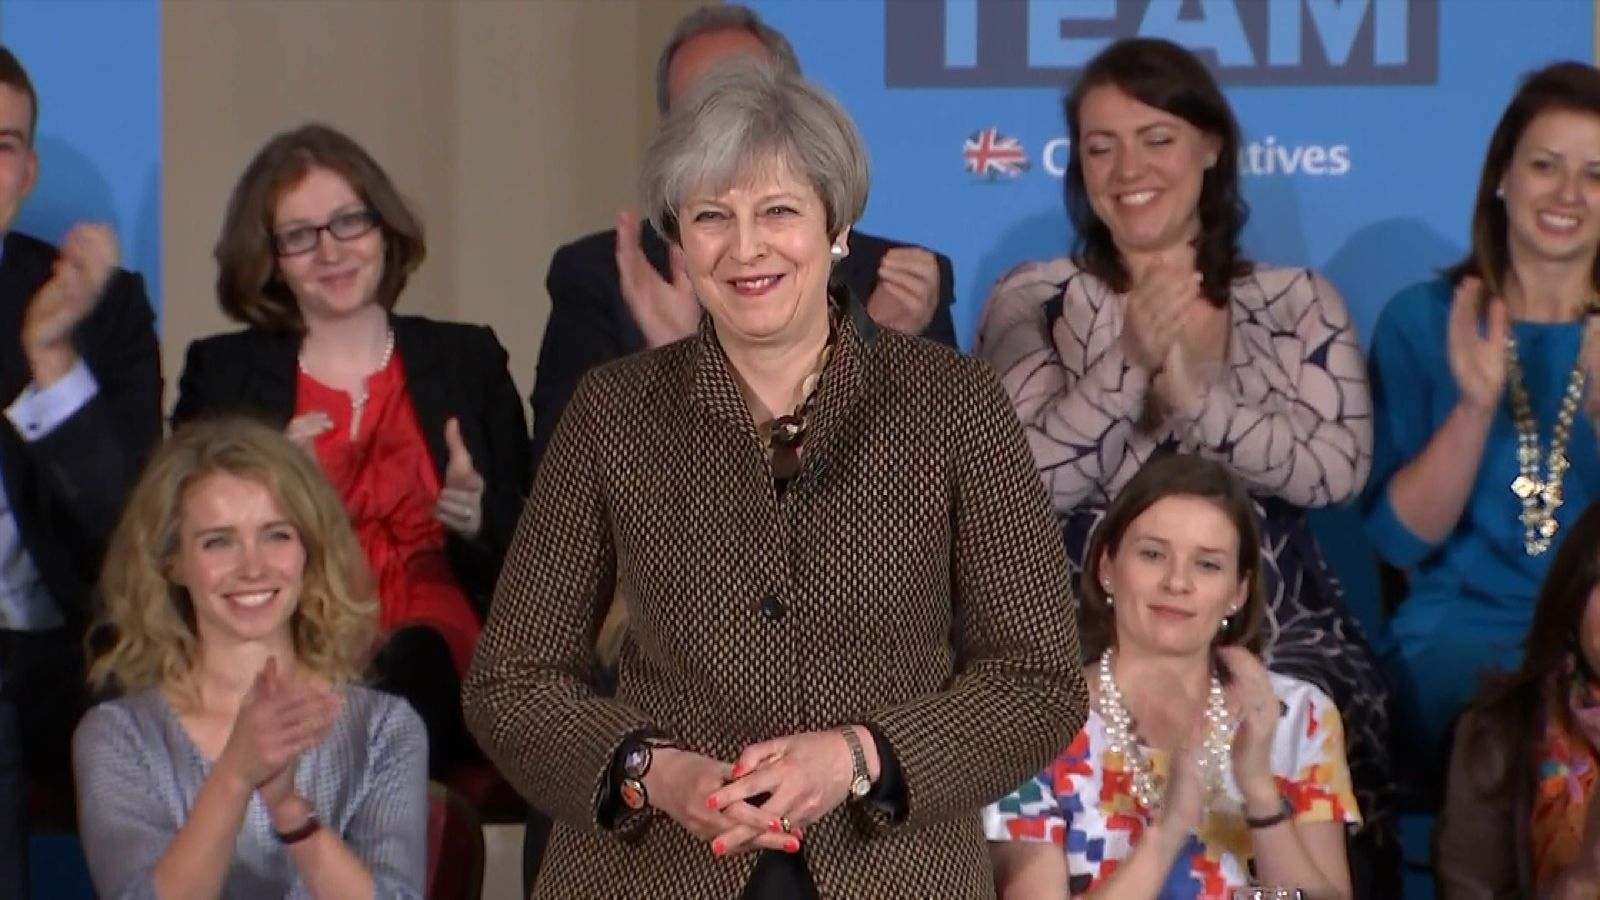 The Prime Minister has confirmed she will be sticking to the Conservative target to reduce net migration to under 100,000 - that's despite not hitting it for seven years.